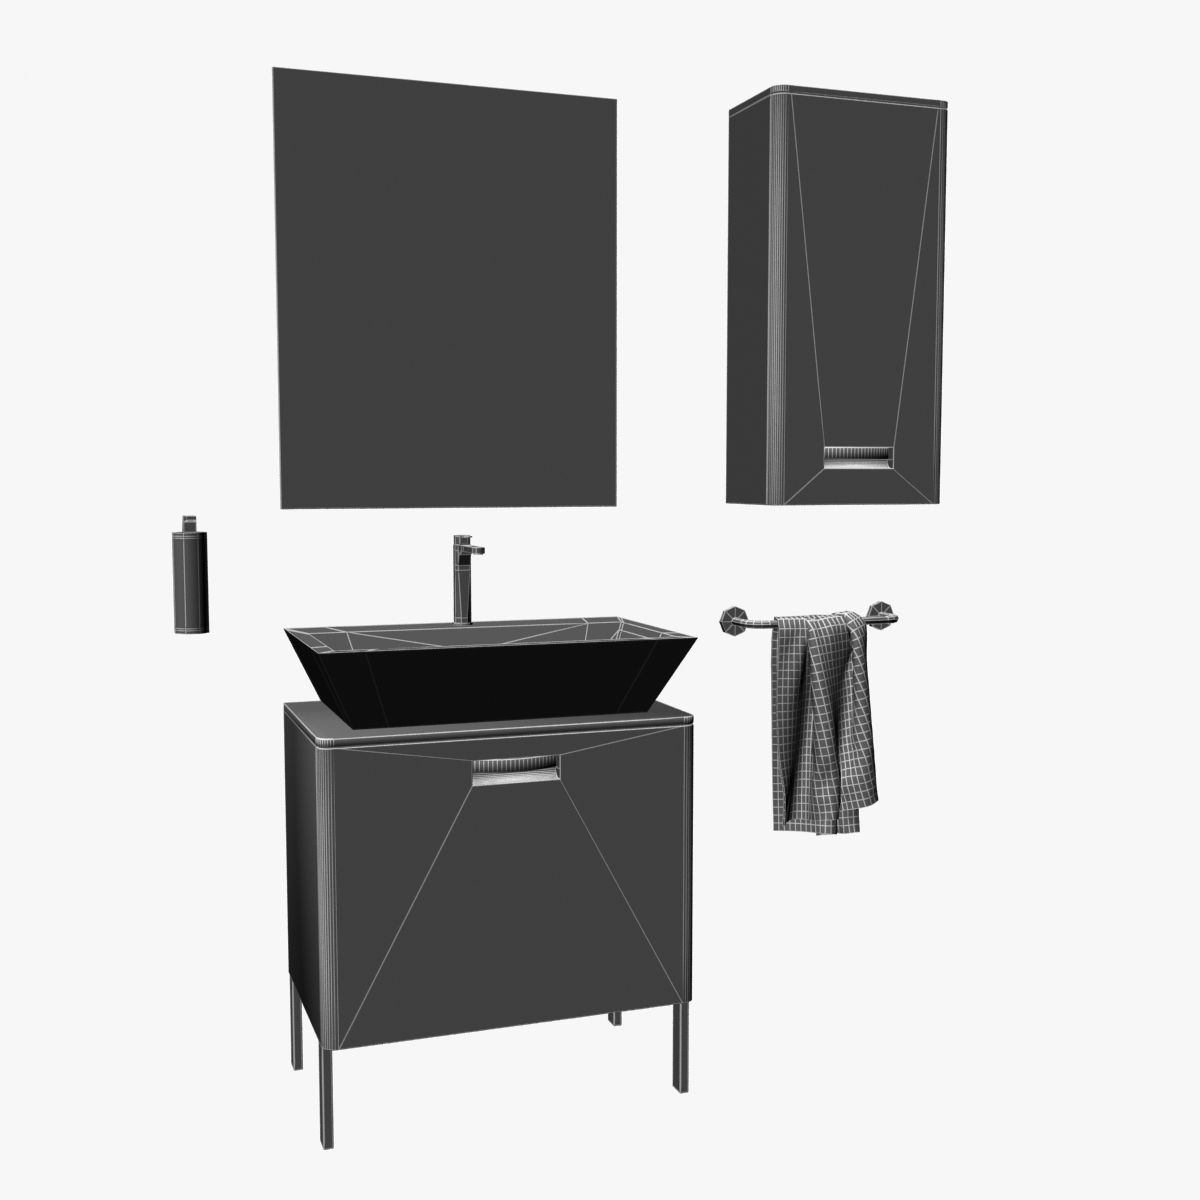 Roca Gap Bathroom Furniture Set 3D | CGTrader